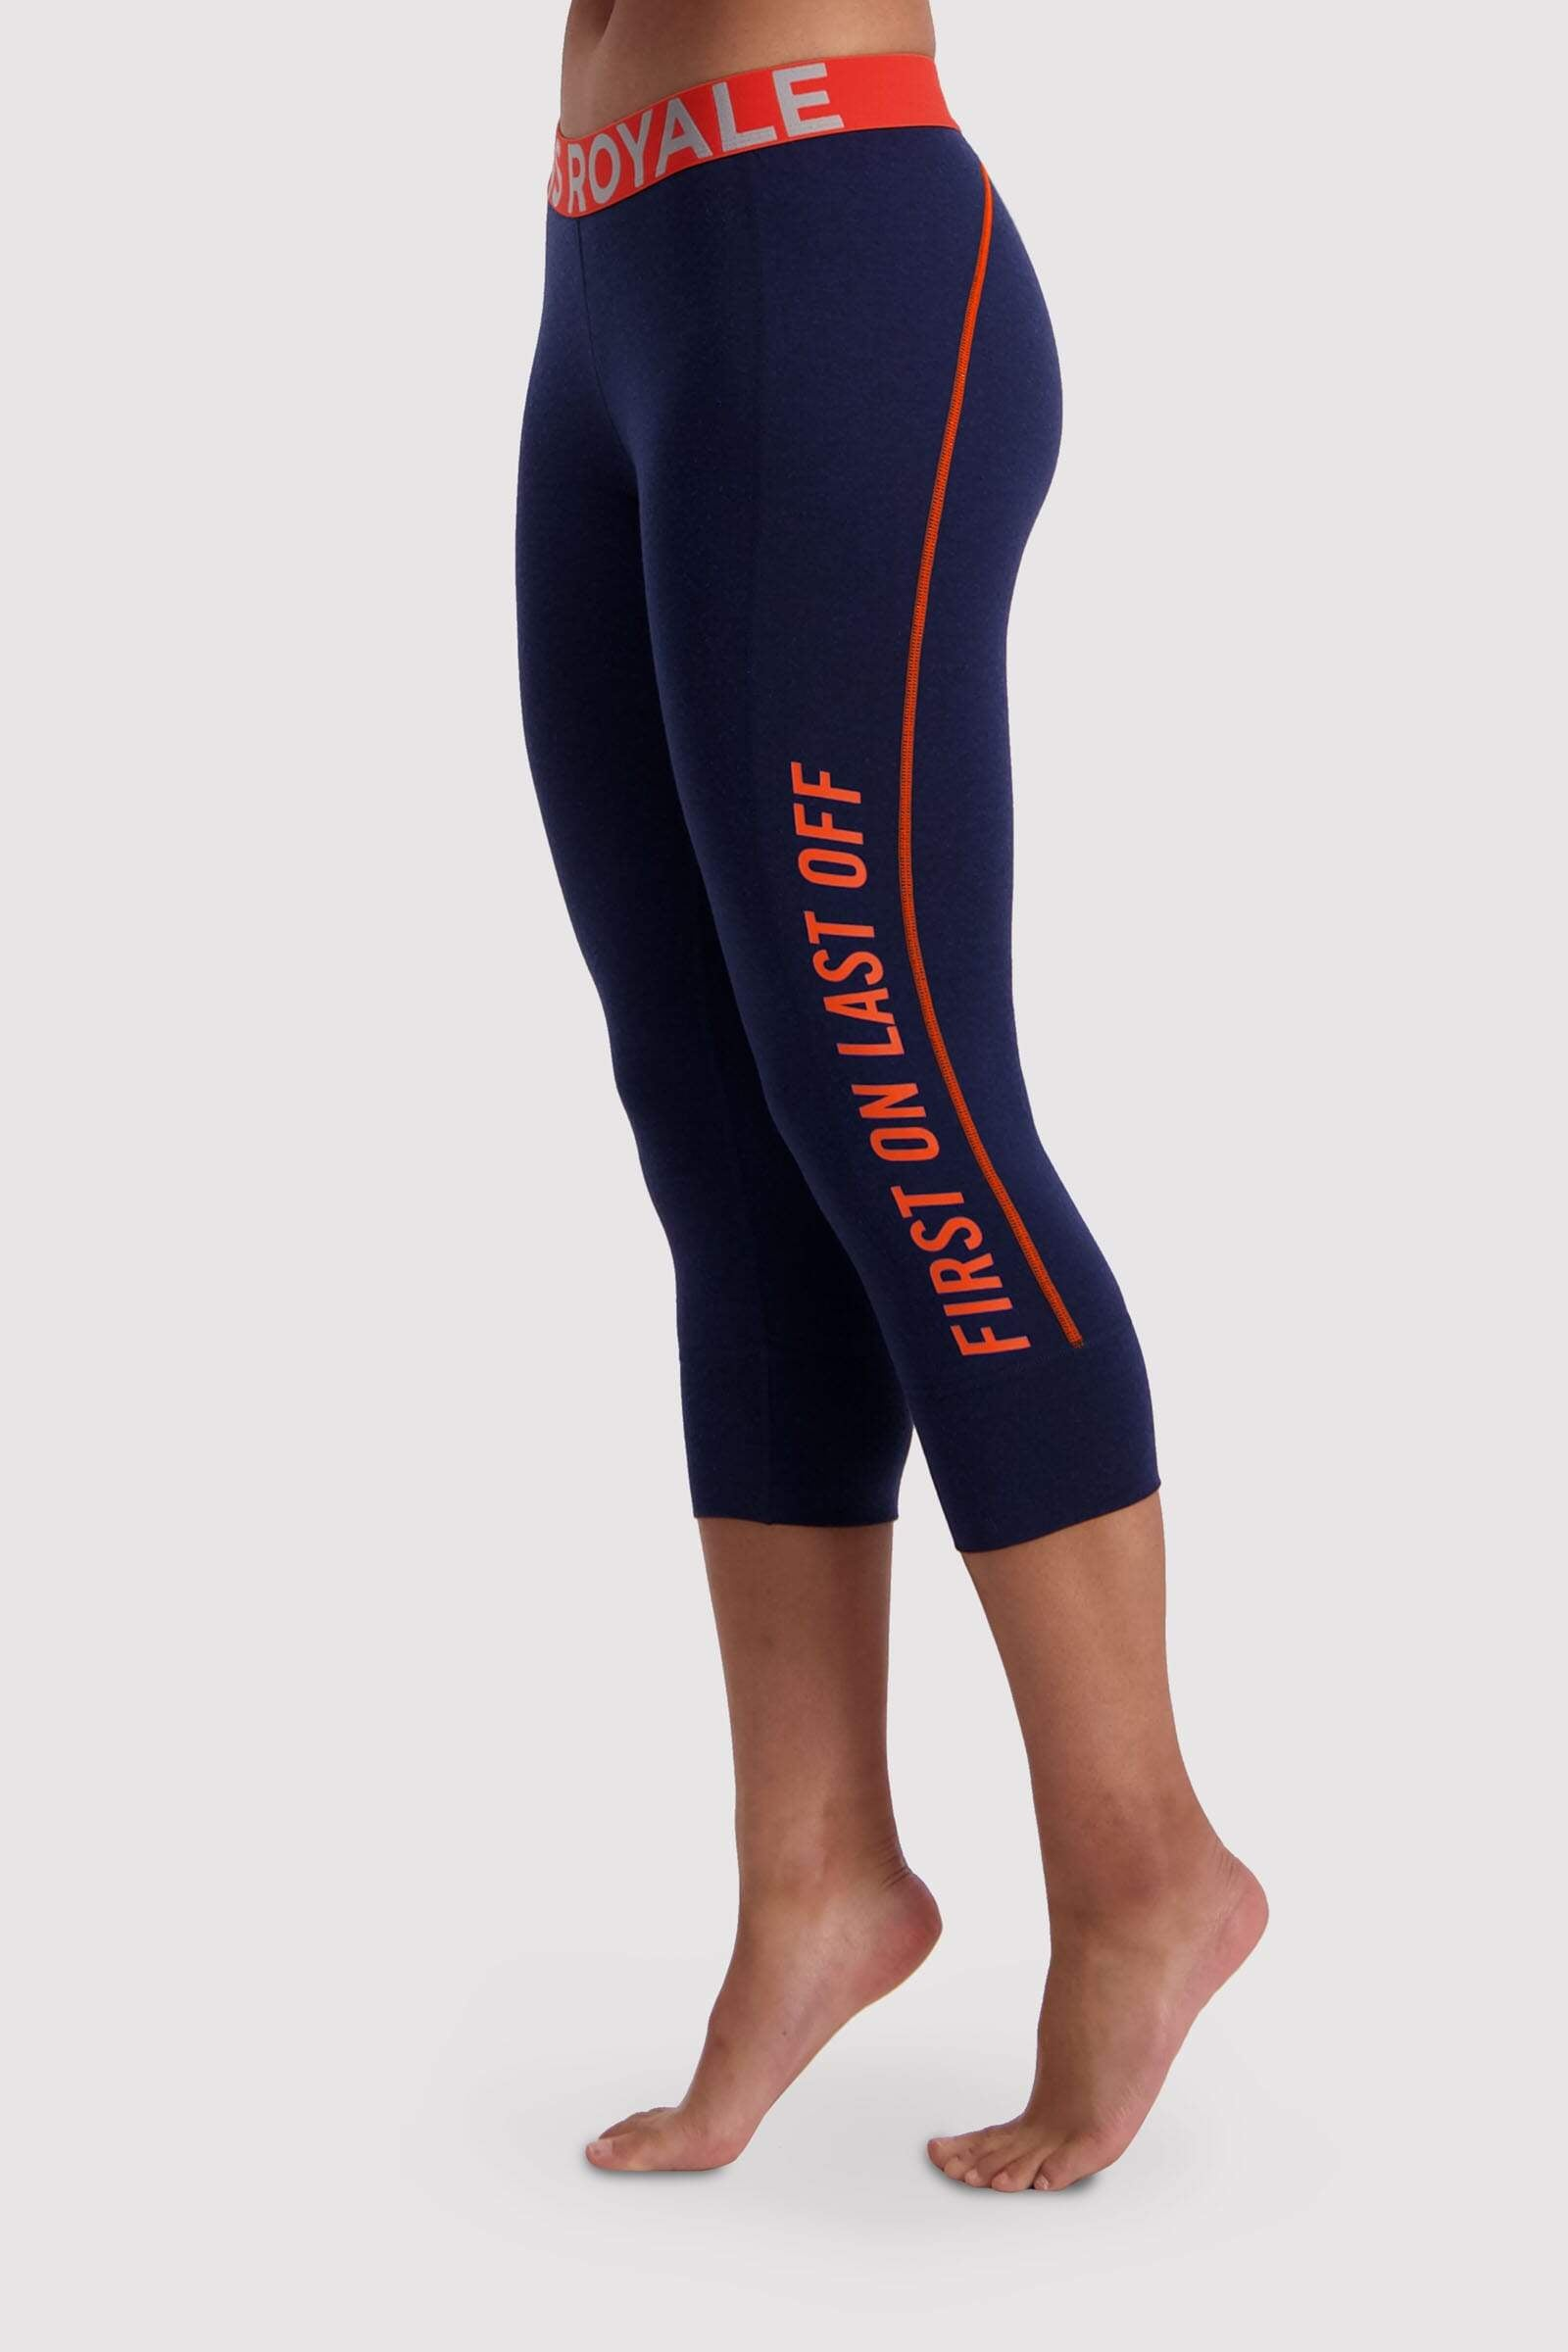 Christy 3/4 Legging - Navy